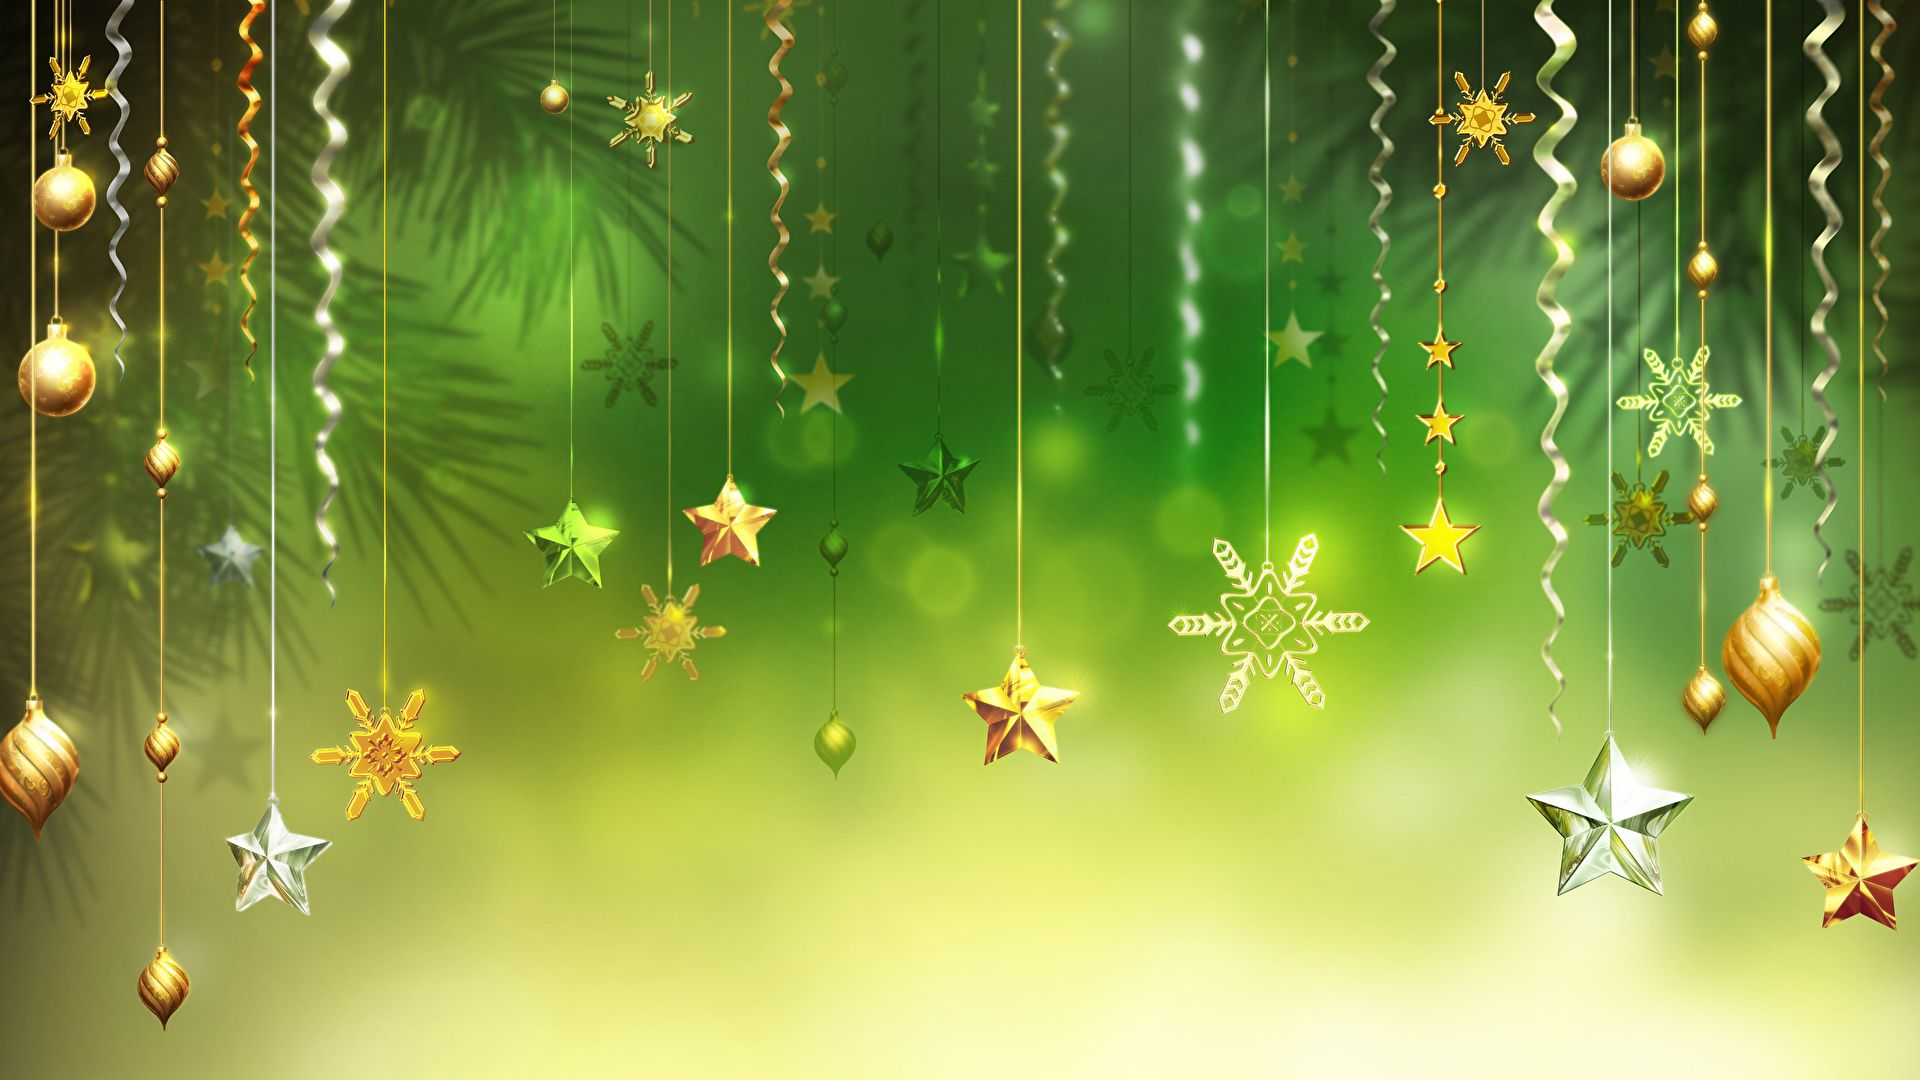 Green Christmas wallpaper theme